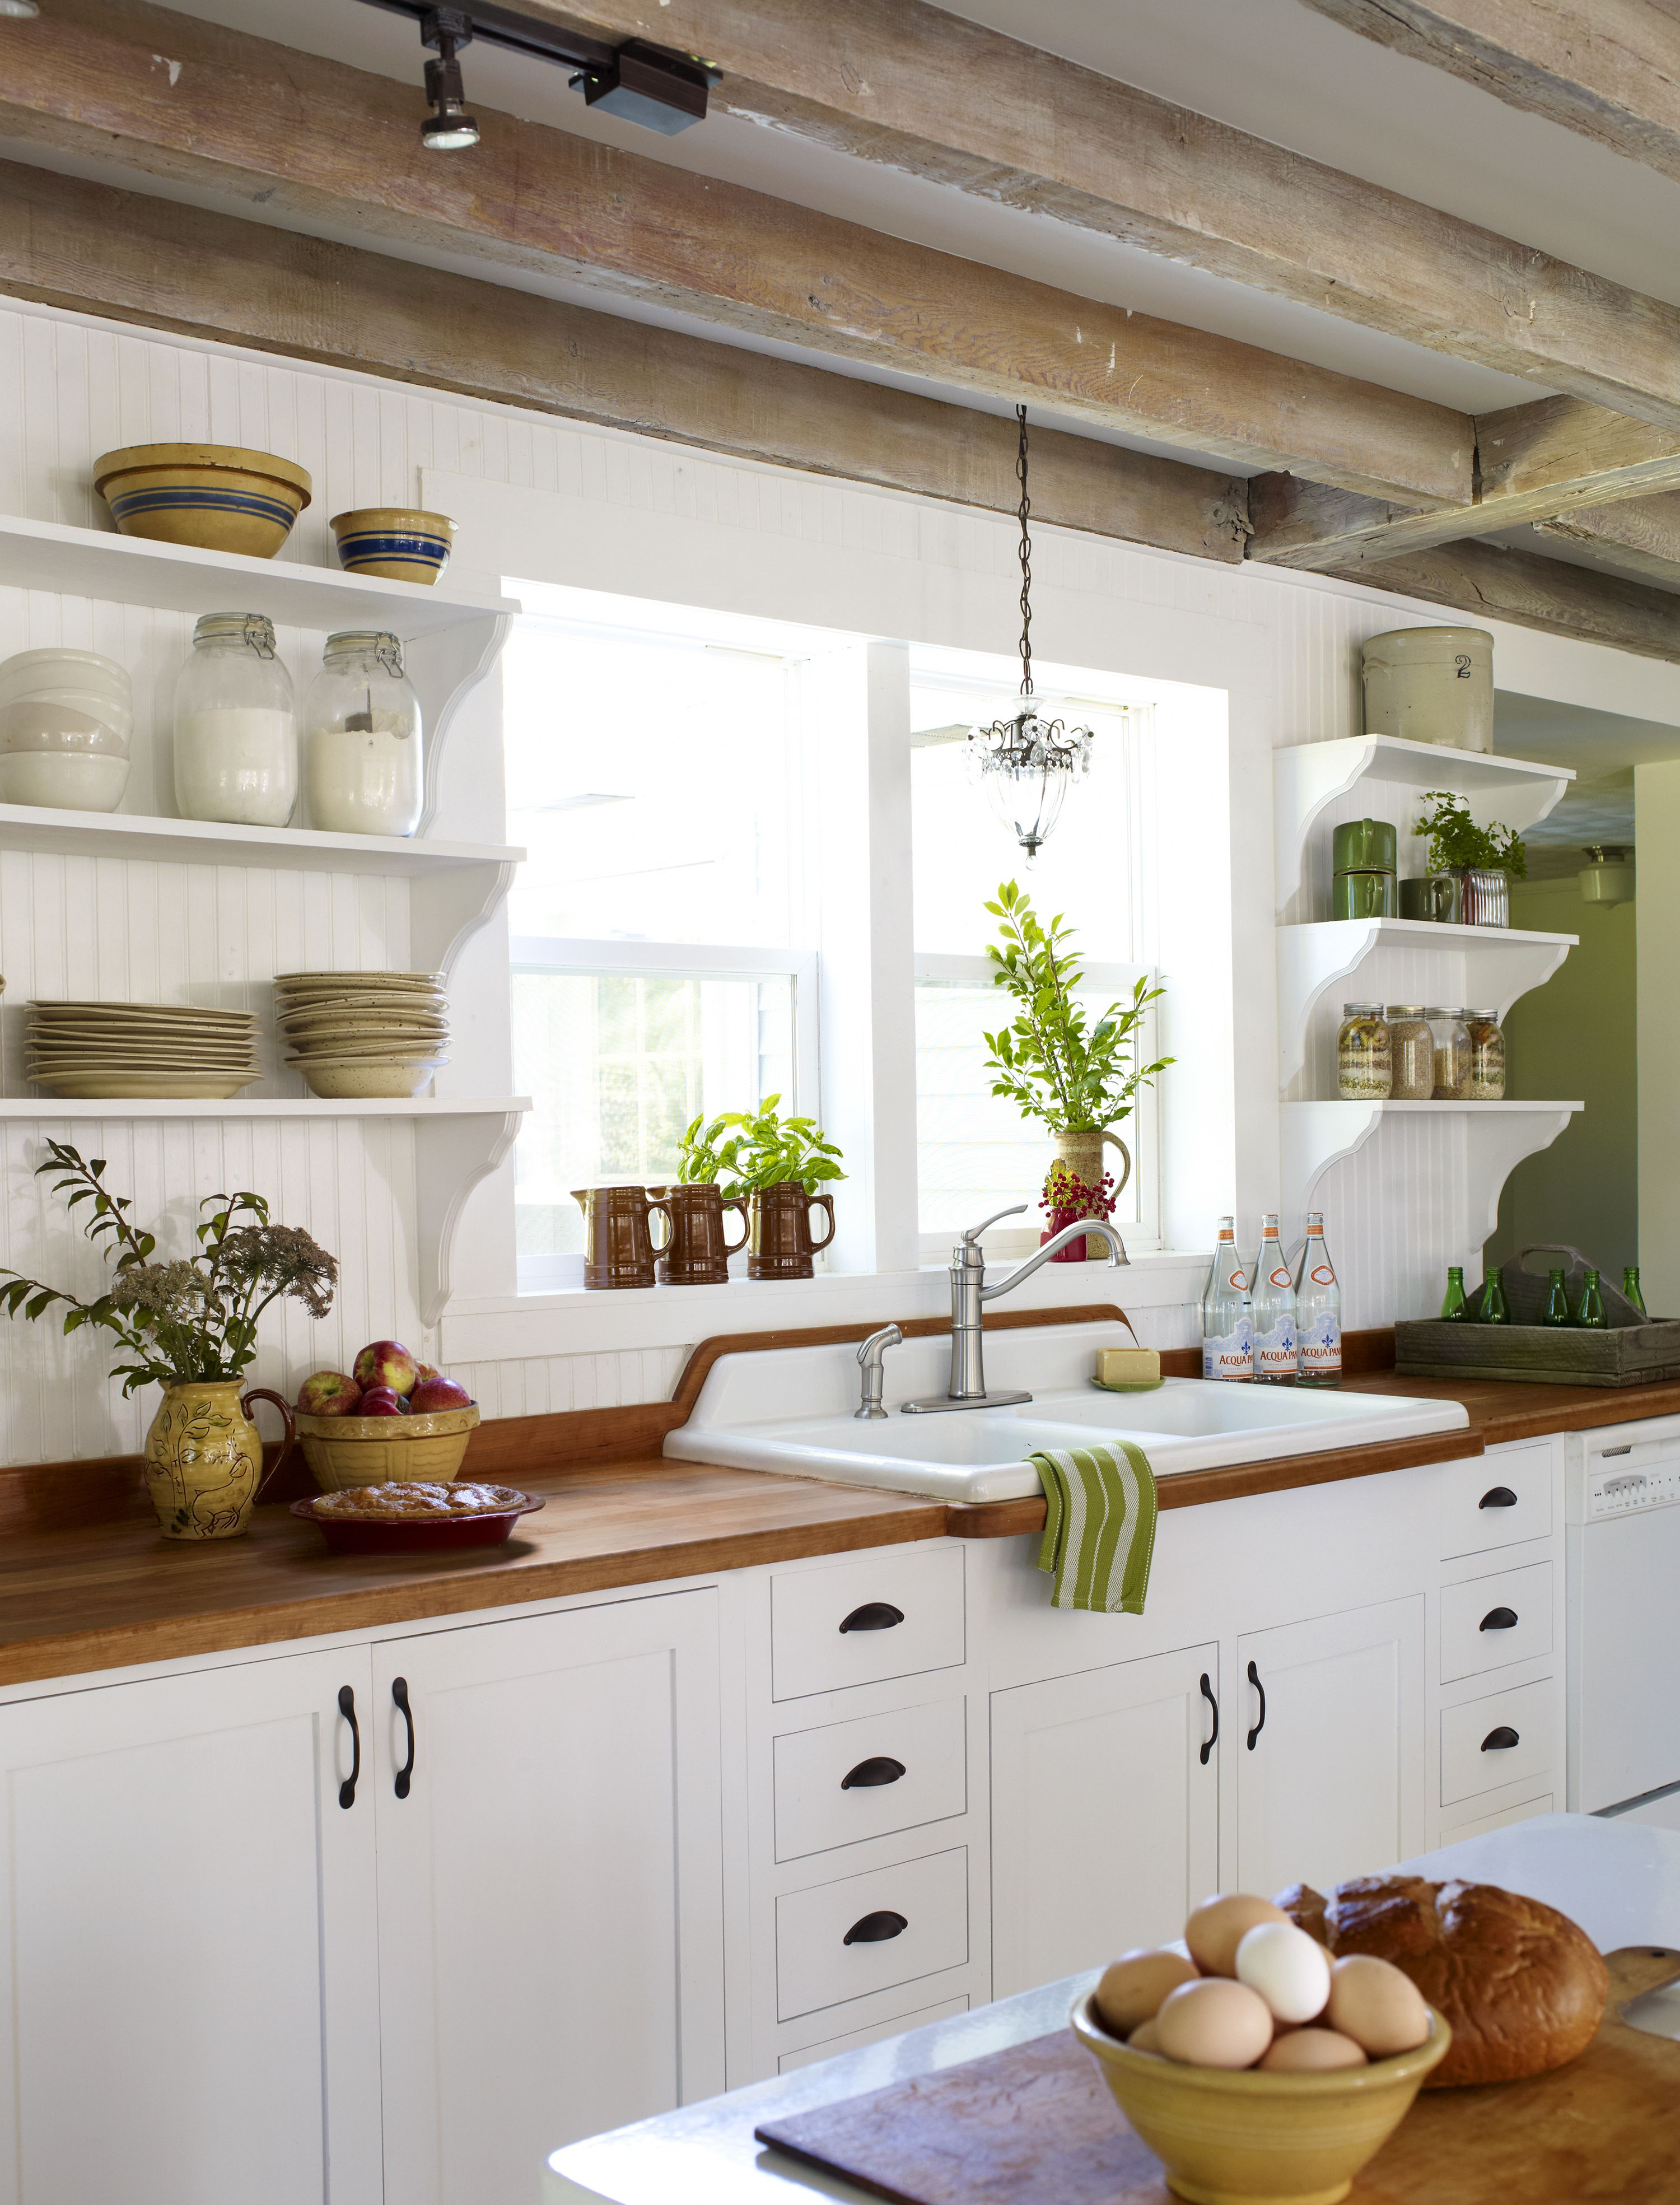 Wood Counter Style Refreshed Farmhouse Home Kitchens Kitchen